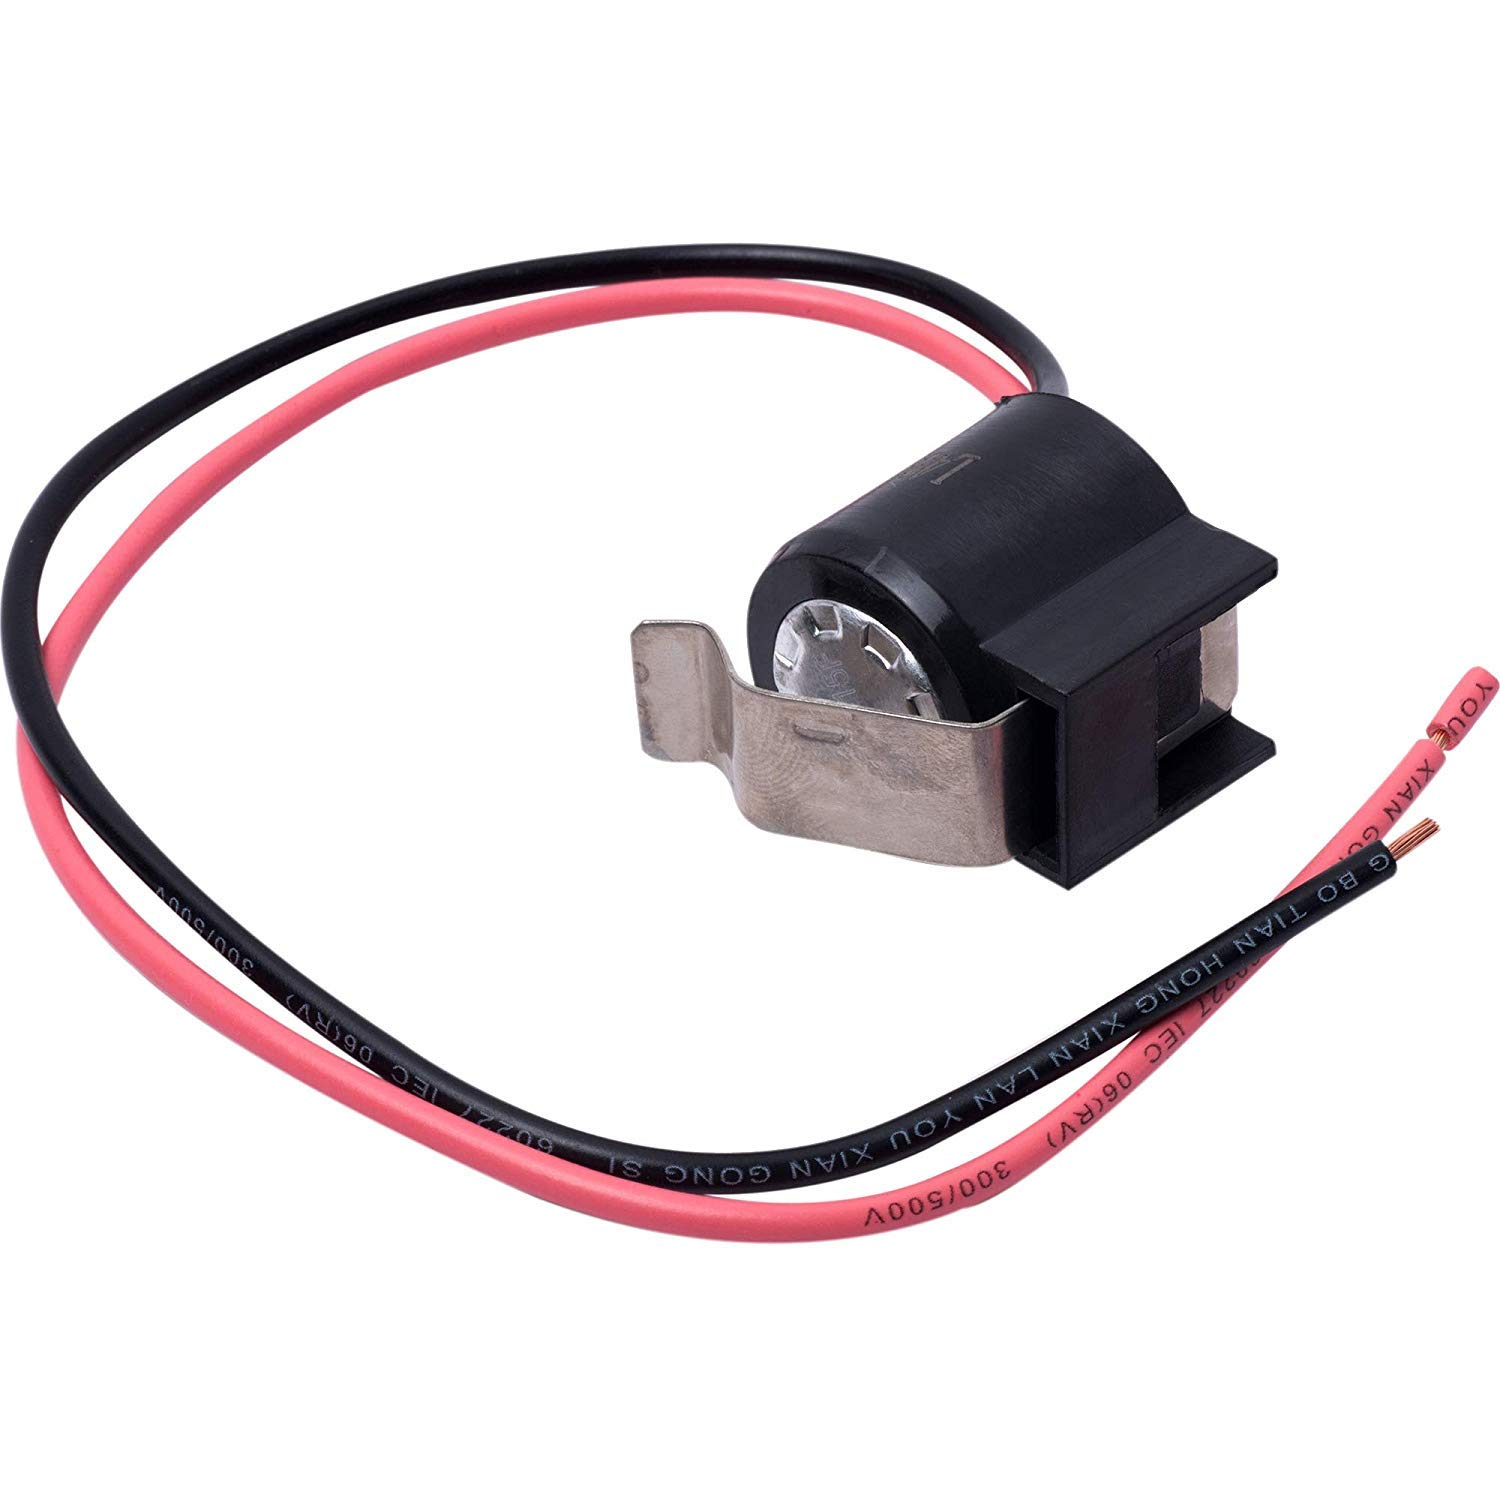 W10225581 Refrigerator Bimetal Defrost Thermostat for Whirlpool KitchenAid Kenmore Replace WPW10225581, AP6017375, PS11750673, PS237680,2321799